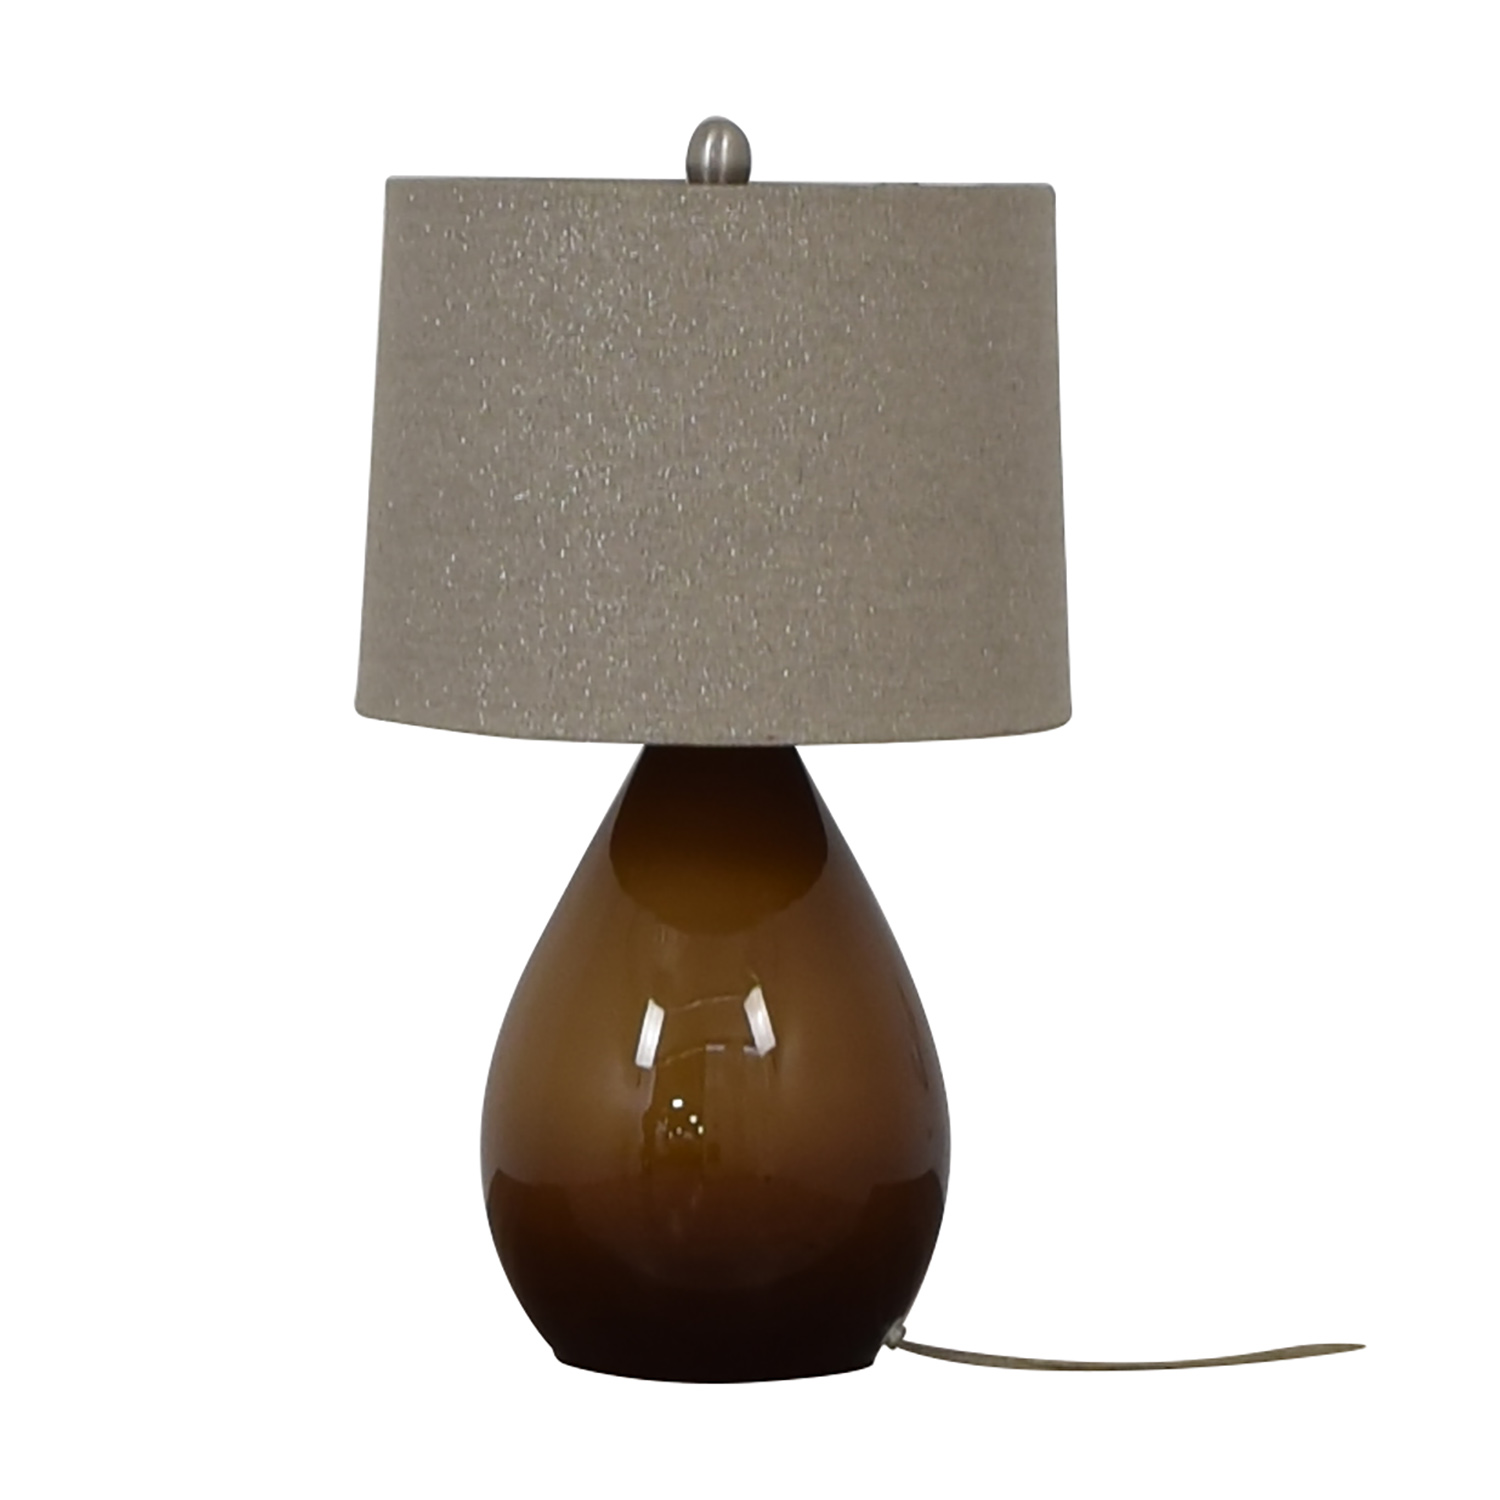 Crate & Barrel Crate & Barrel Table Lamp Decor